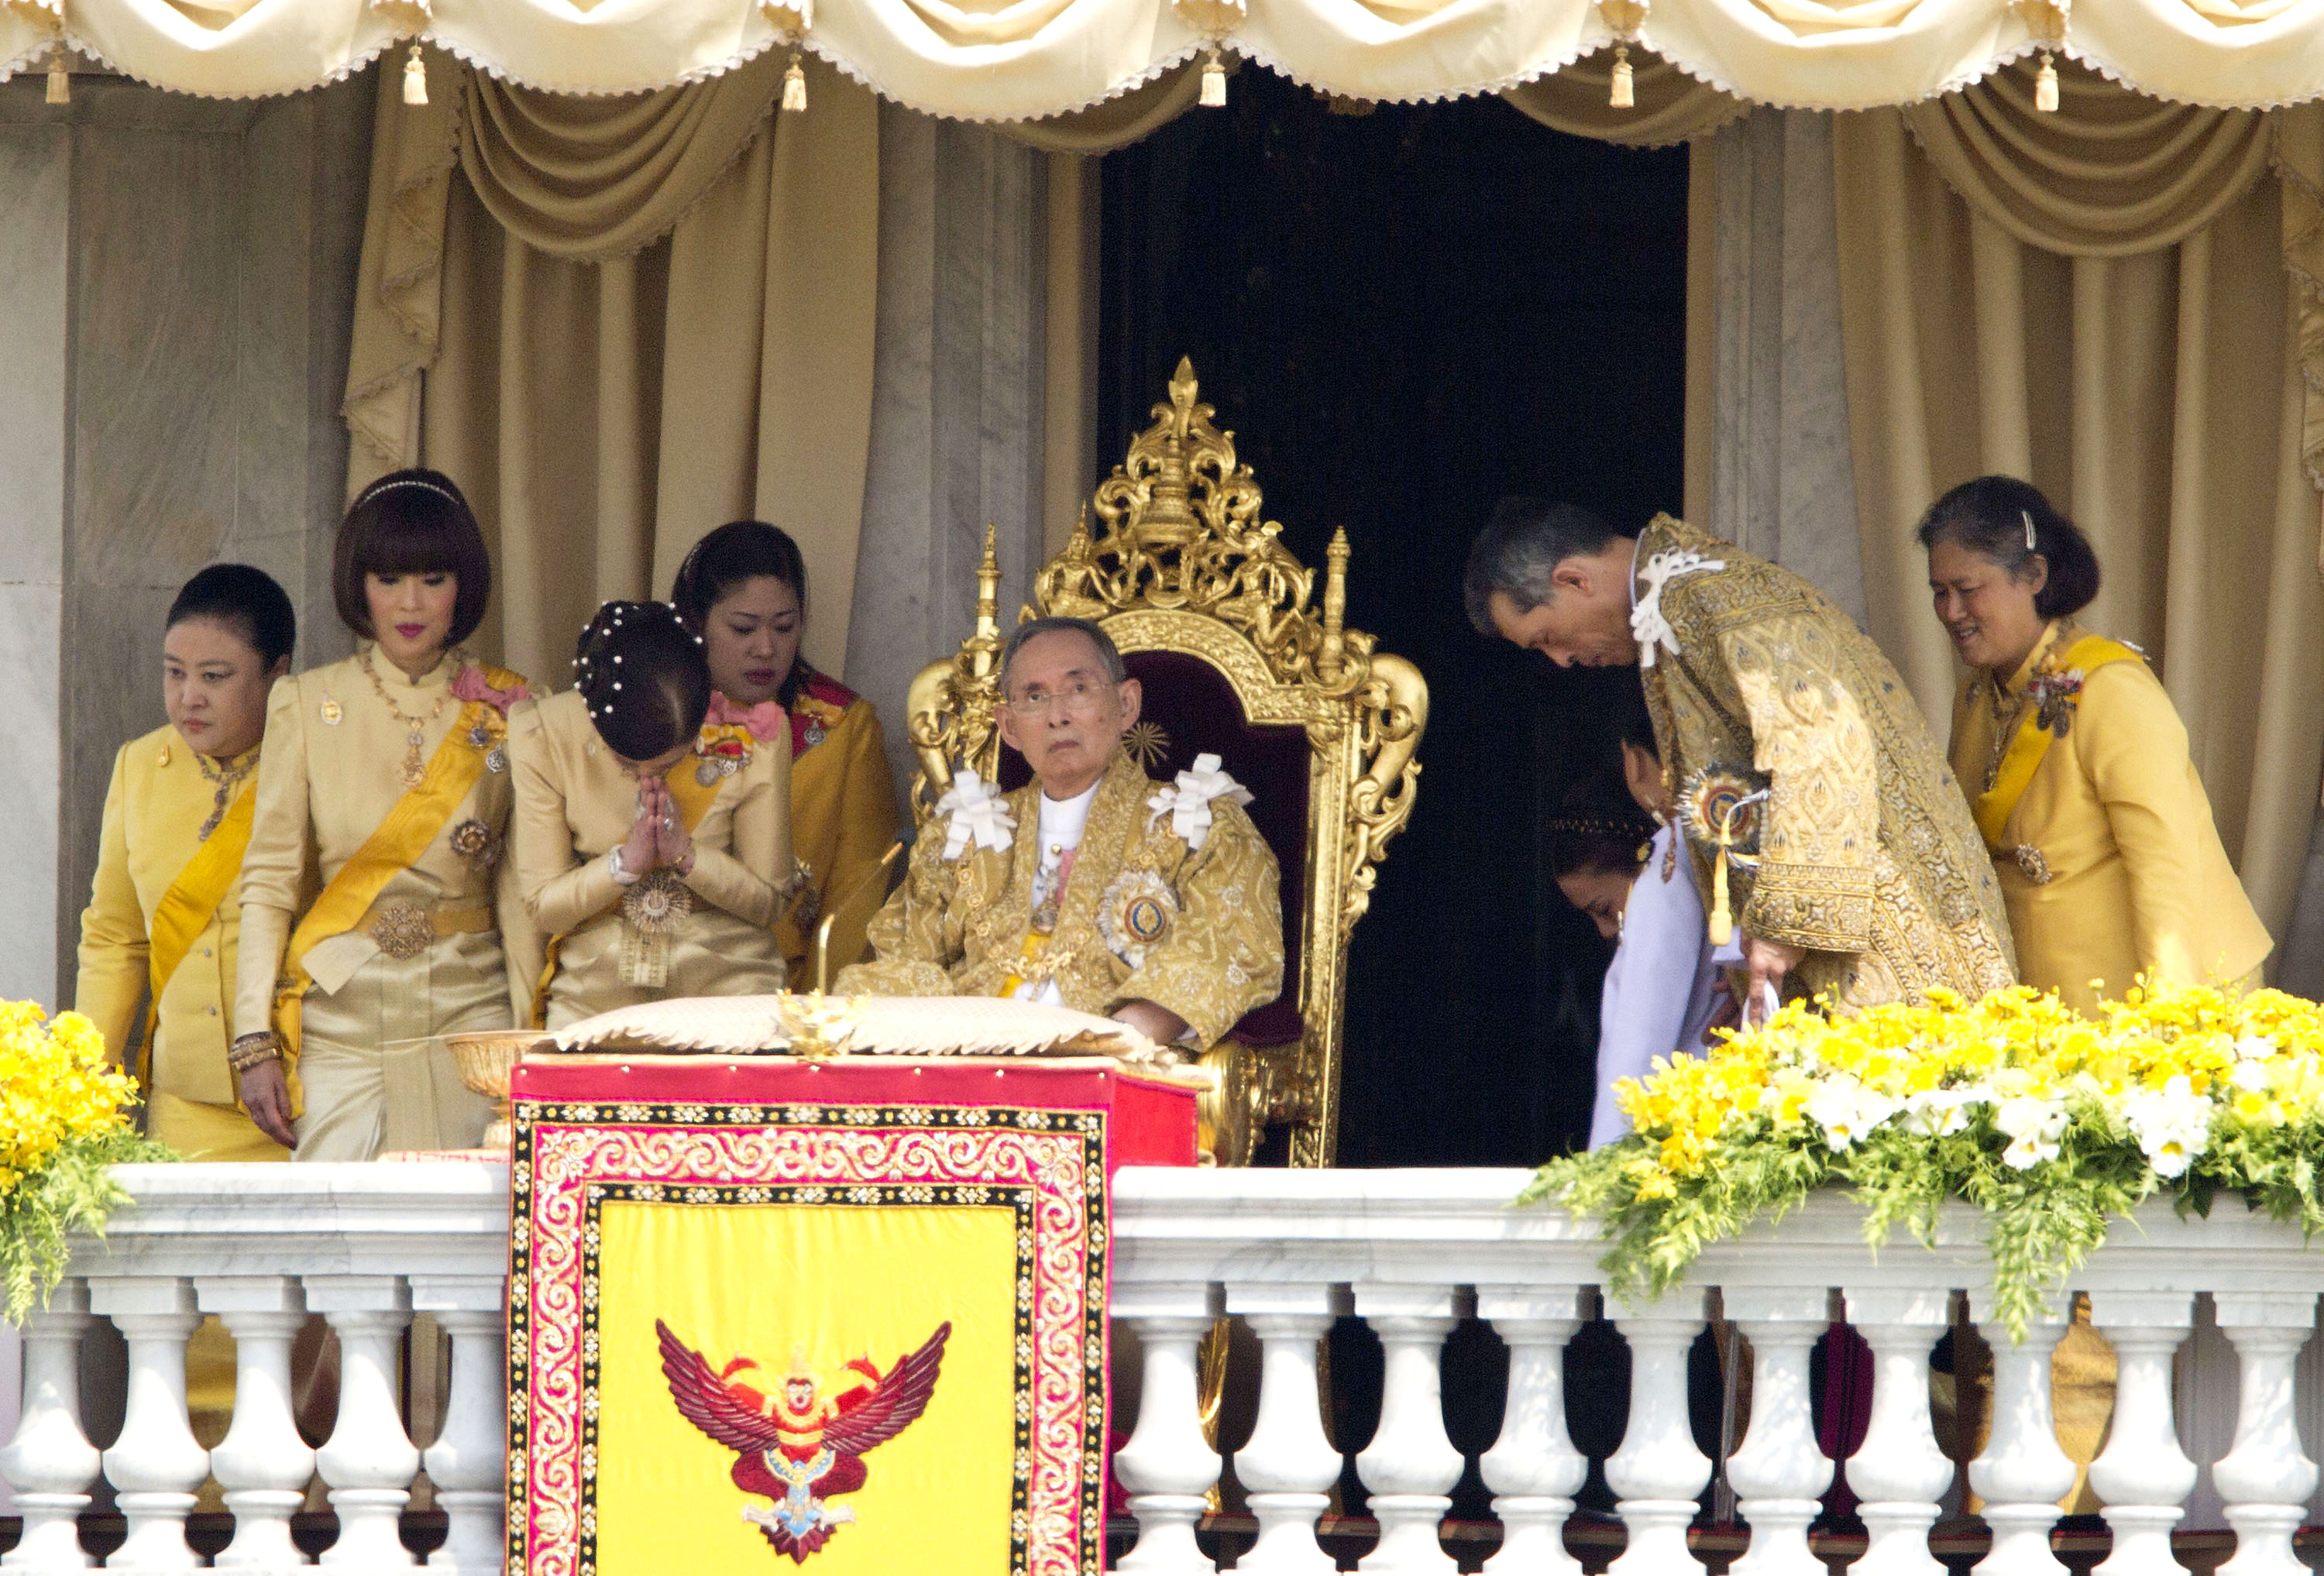 FILE - Thai King Bhumibol Adulyadej, center, is surrounded by his family members (L-R) Princess Somsavali, his daughter Princess Ubolratana, his daughter Princess Chulabhorn, Princess Siribhachudabhorn, Royal Consort Princess Srirasm, his grandson Pr...